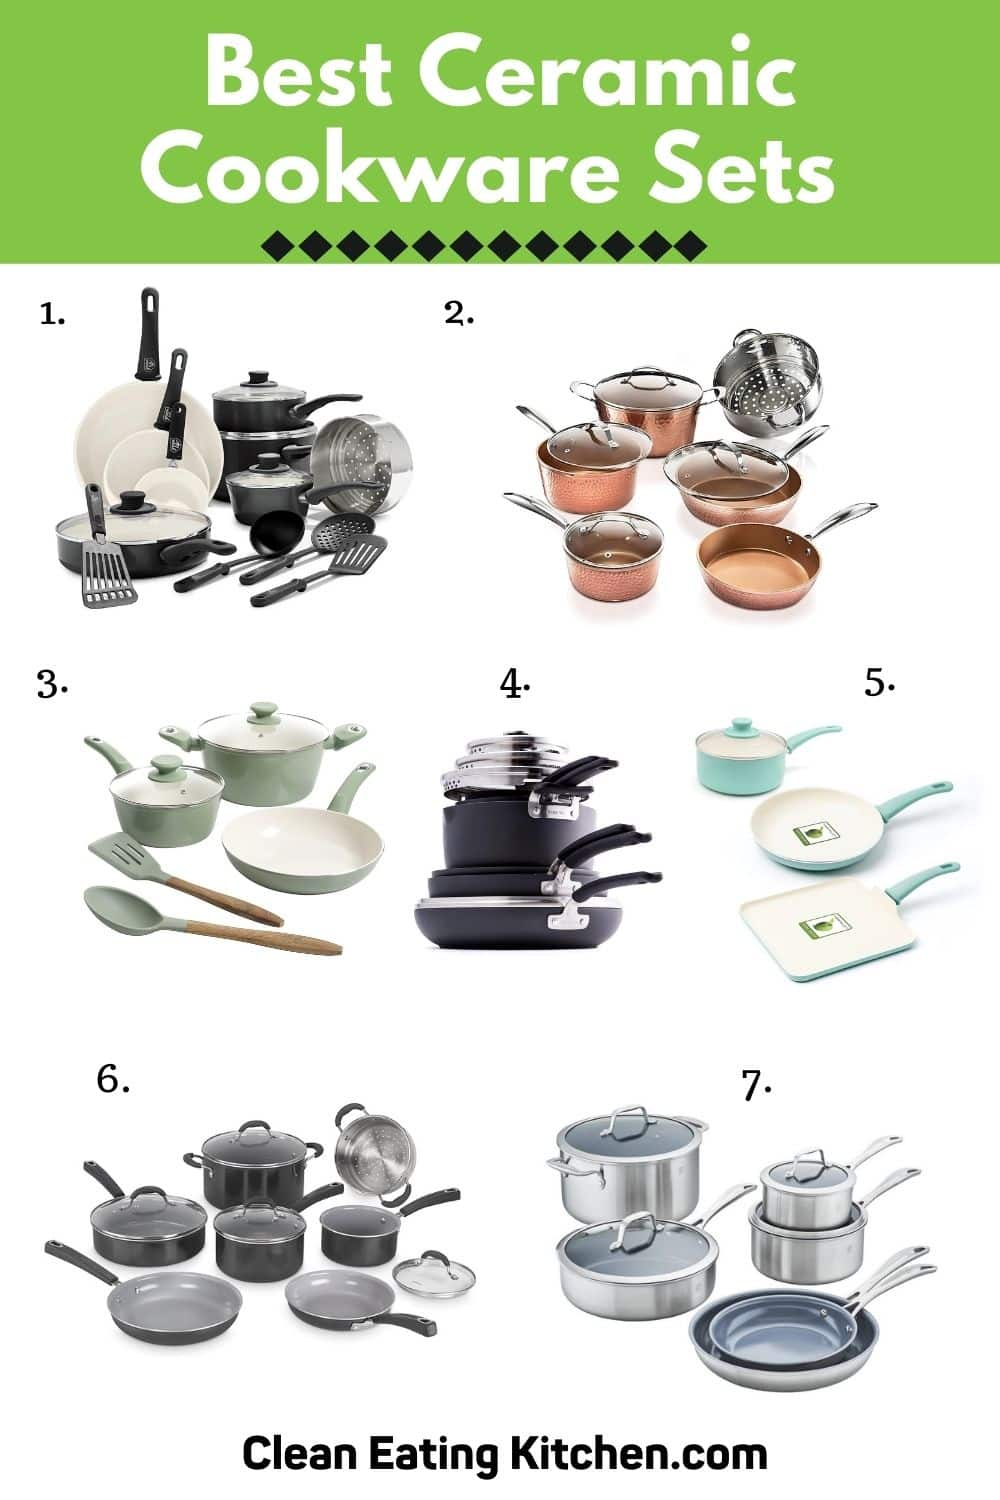 best ceramic cookware sets infographic